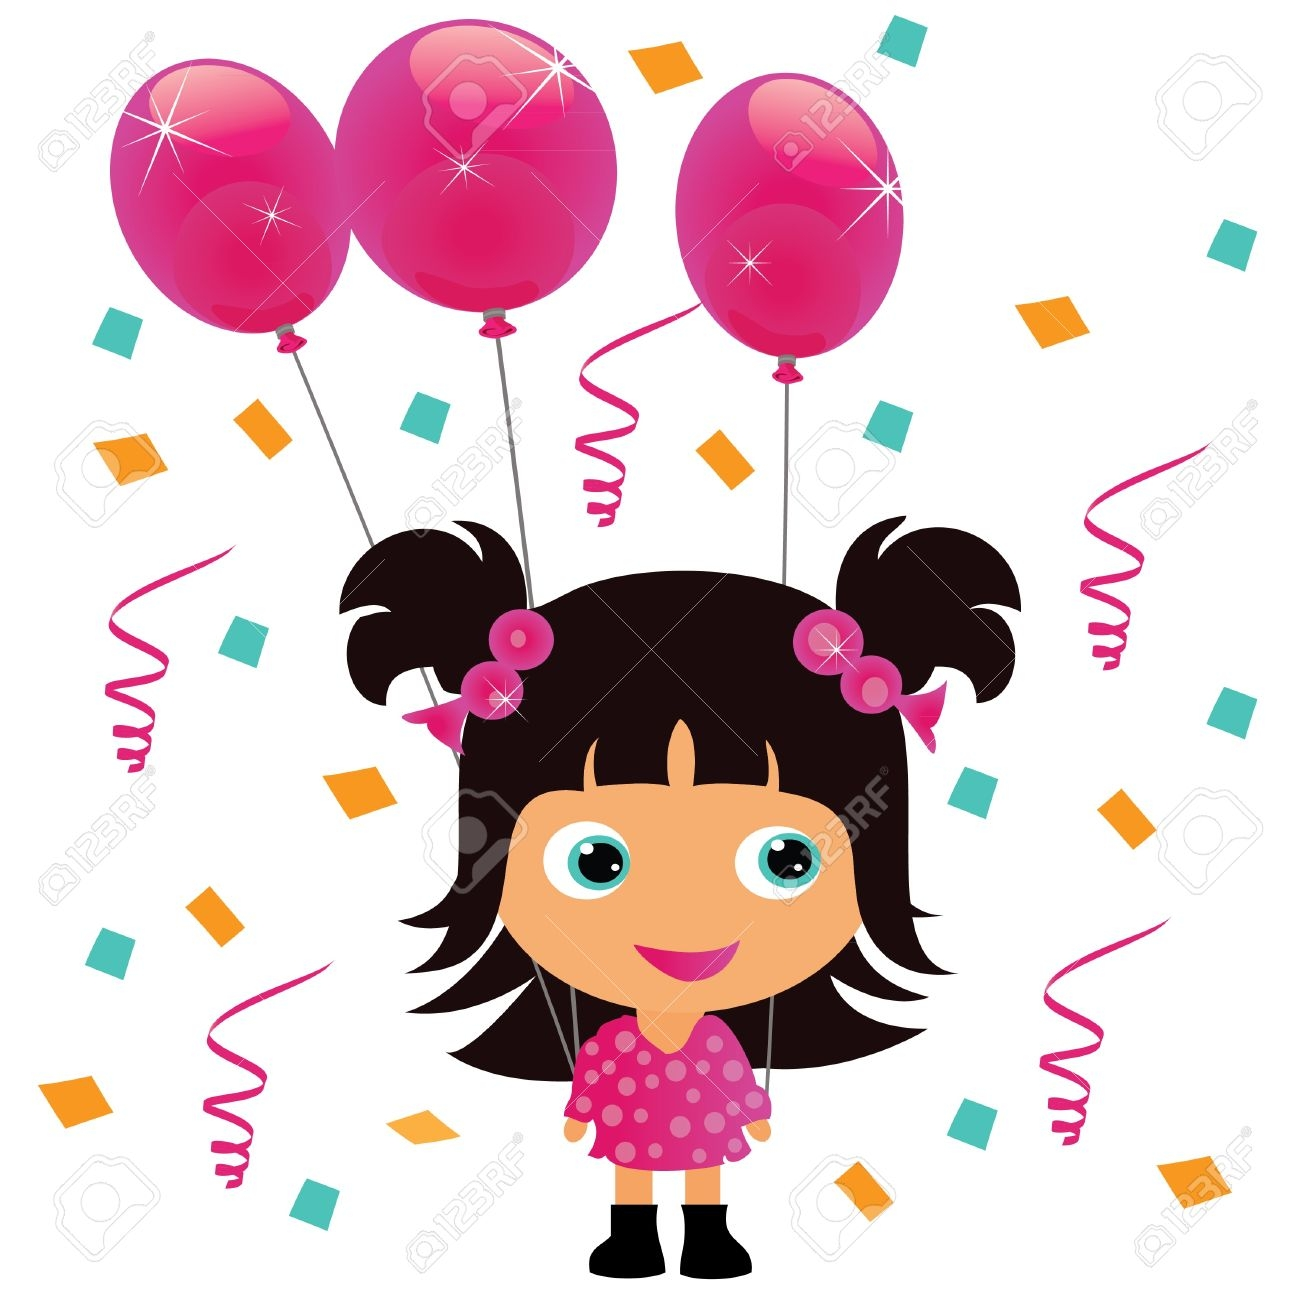 Birthday Clipart For Girls at GetDrawings.com.